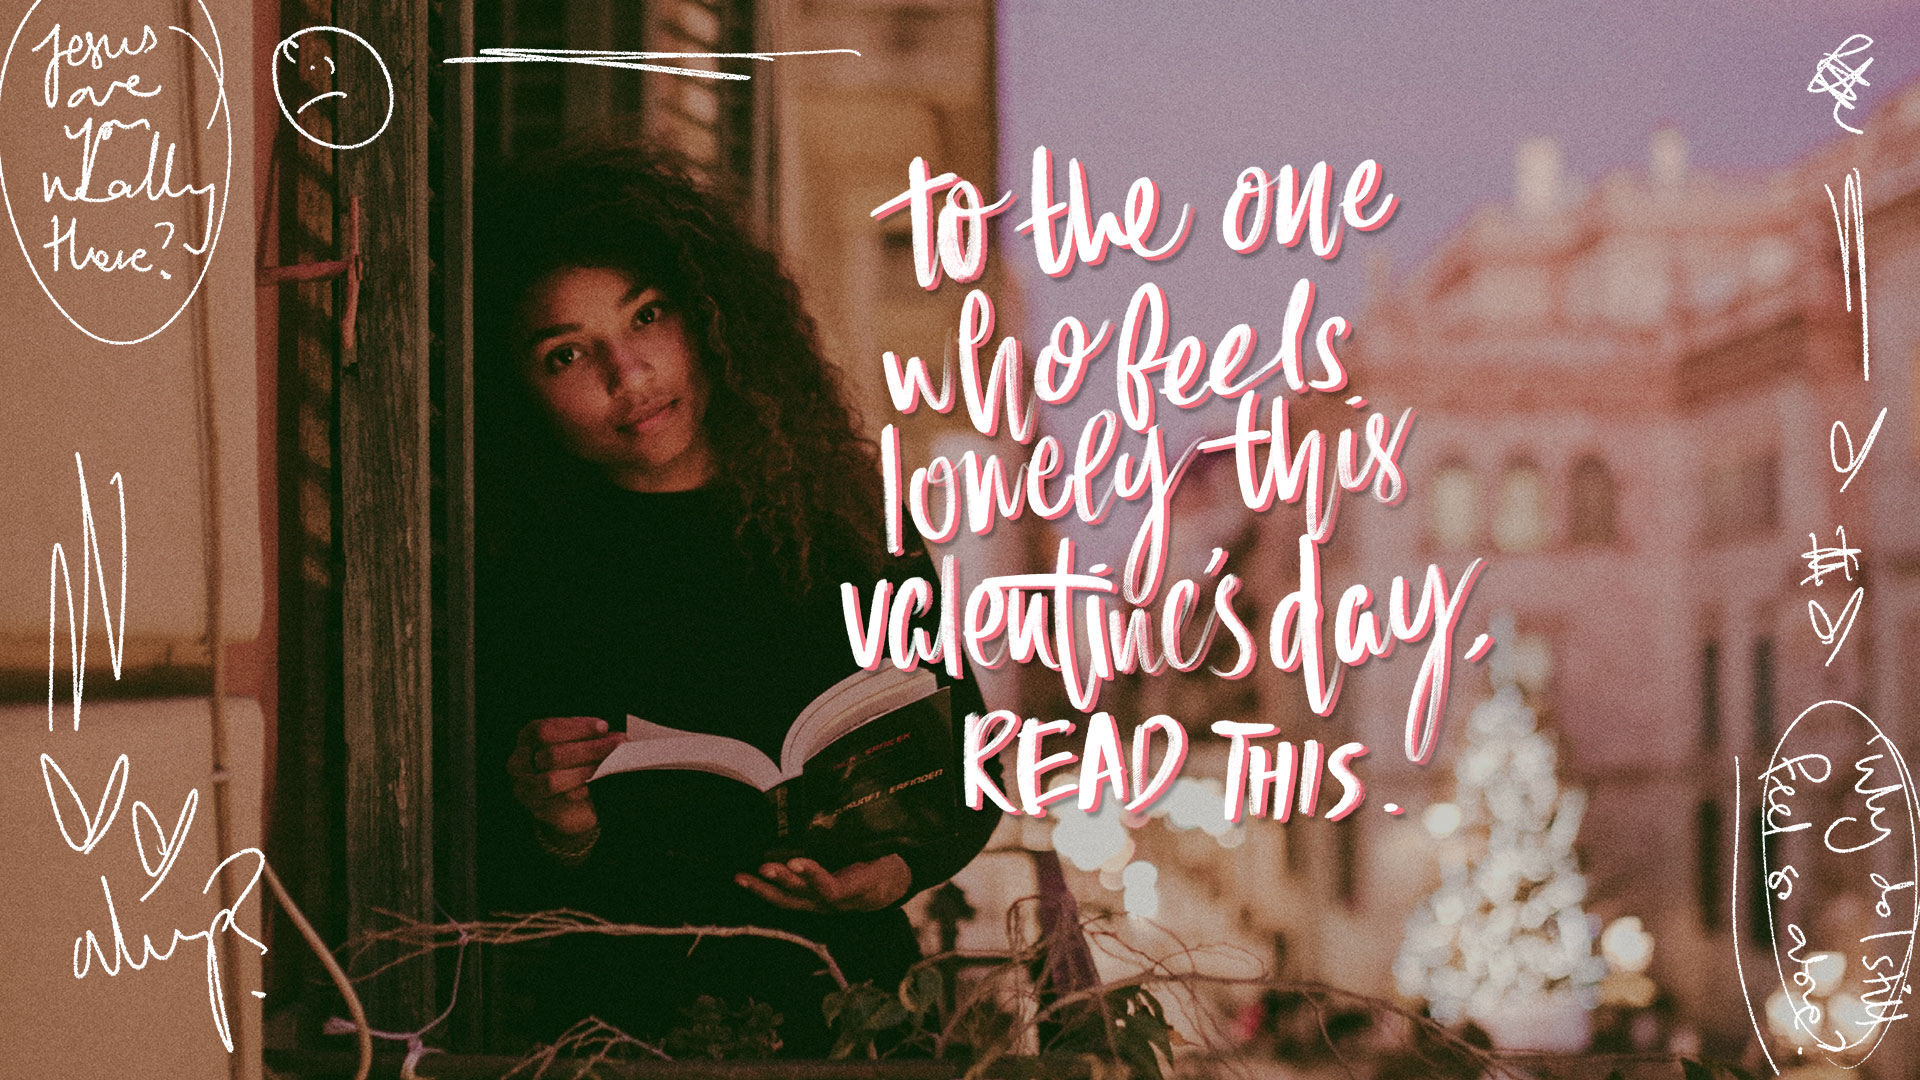 To the one who feels lonely this Valentine's Day, read this.